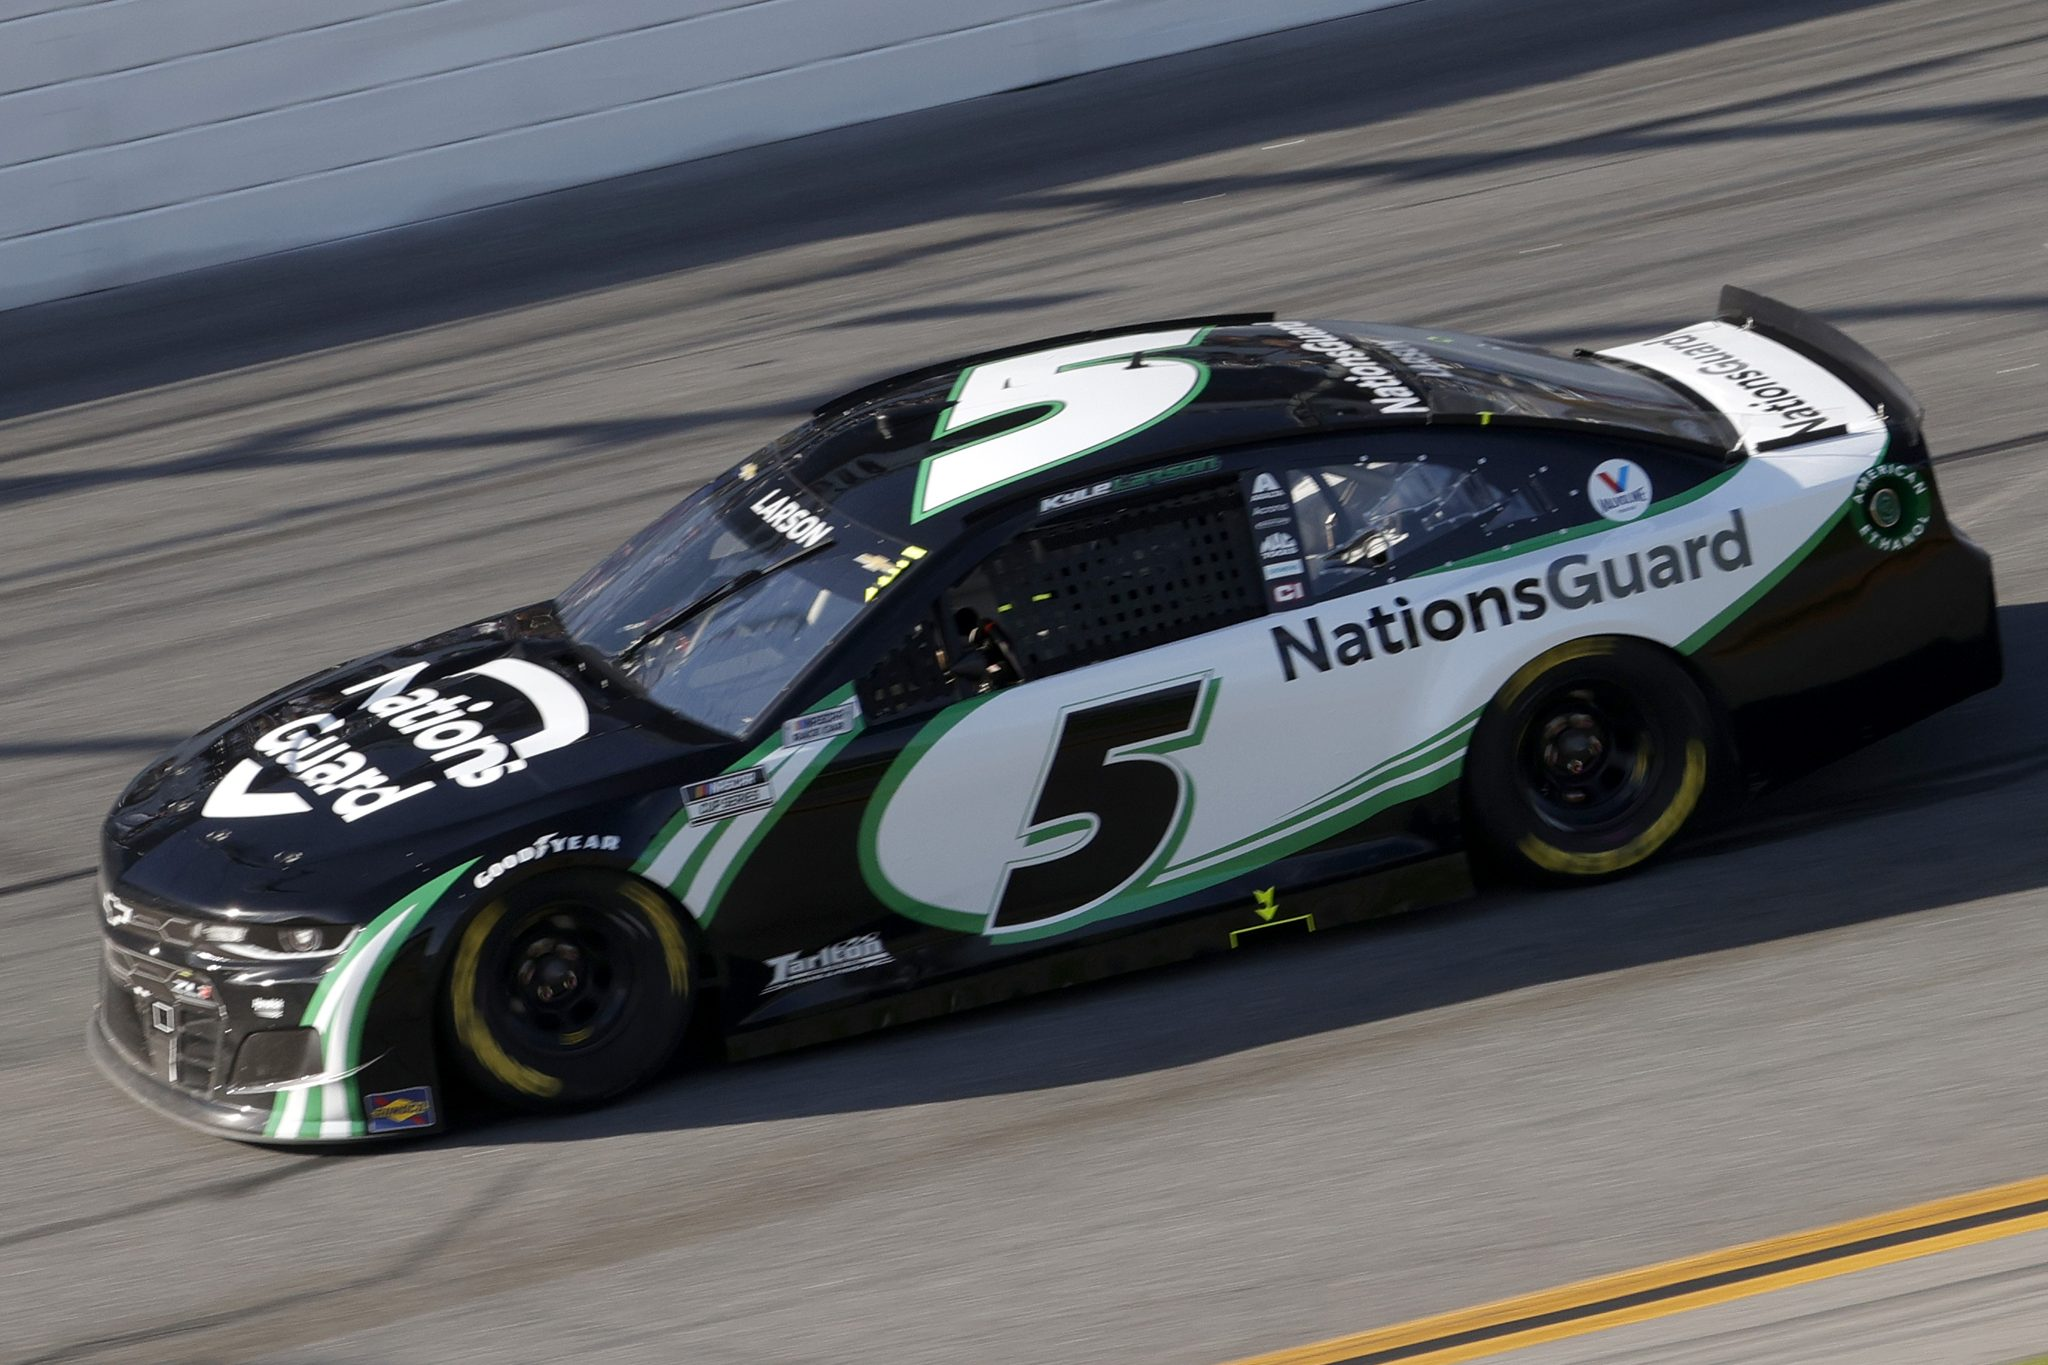 DAYTONA BEACH, FLORIDA - FEBRUARY 21: Kyle Larson, driver of the #5 Nations Guard Chevrolet, drives during the NASCAR Cup Series O'Reilly Auto Parts 253 at Daytona International Speedway on February 21, 2021 in Daytona Beach, Florida. (Photo by Chris Graythen/Getty Images) | Getty Images